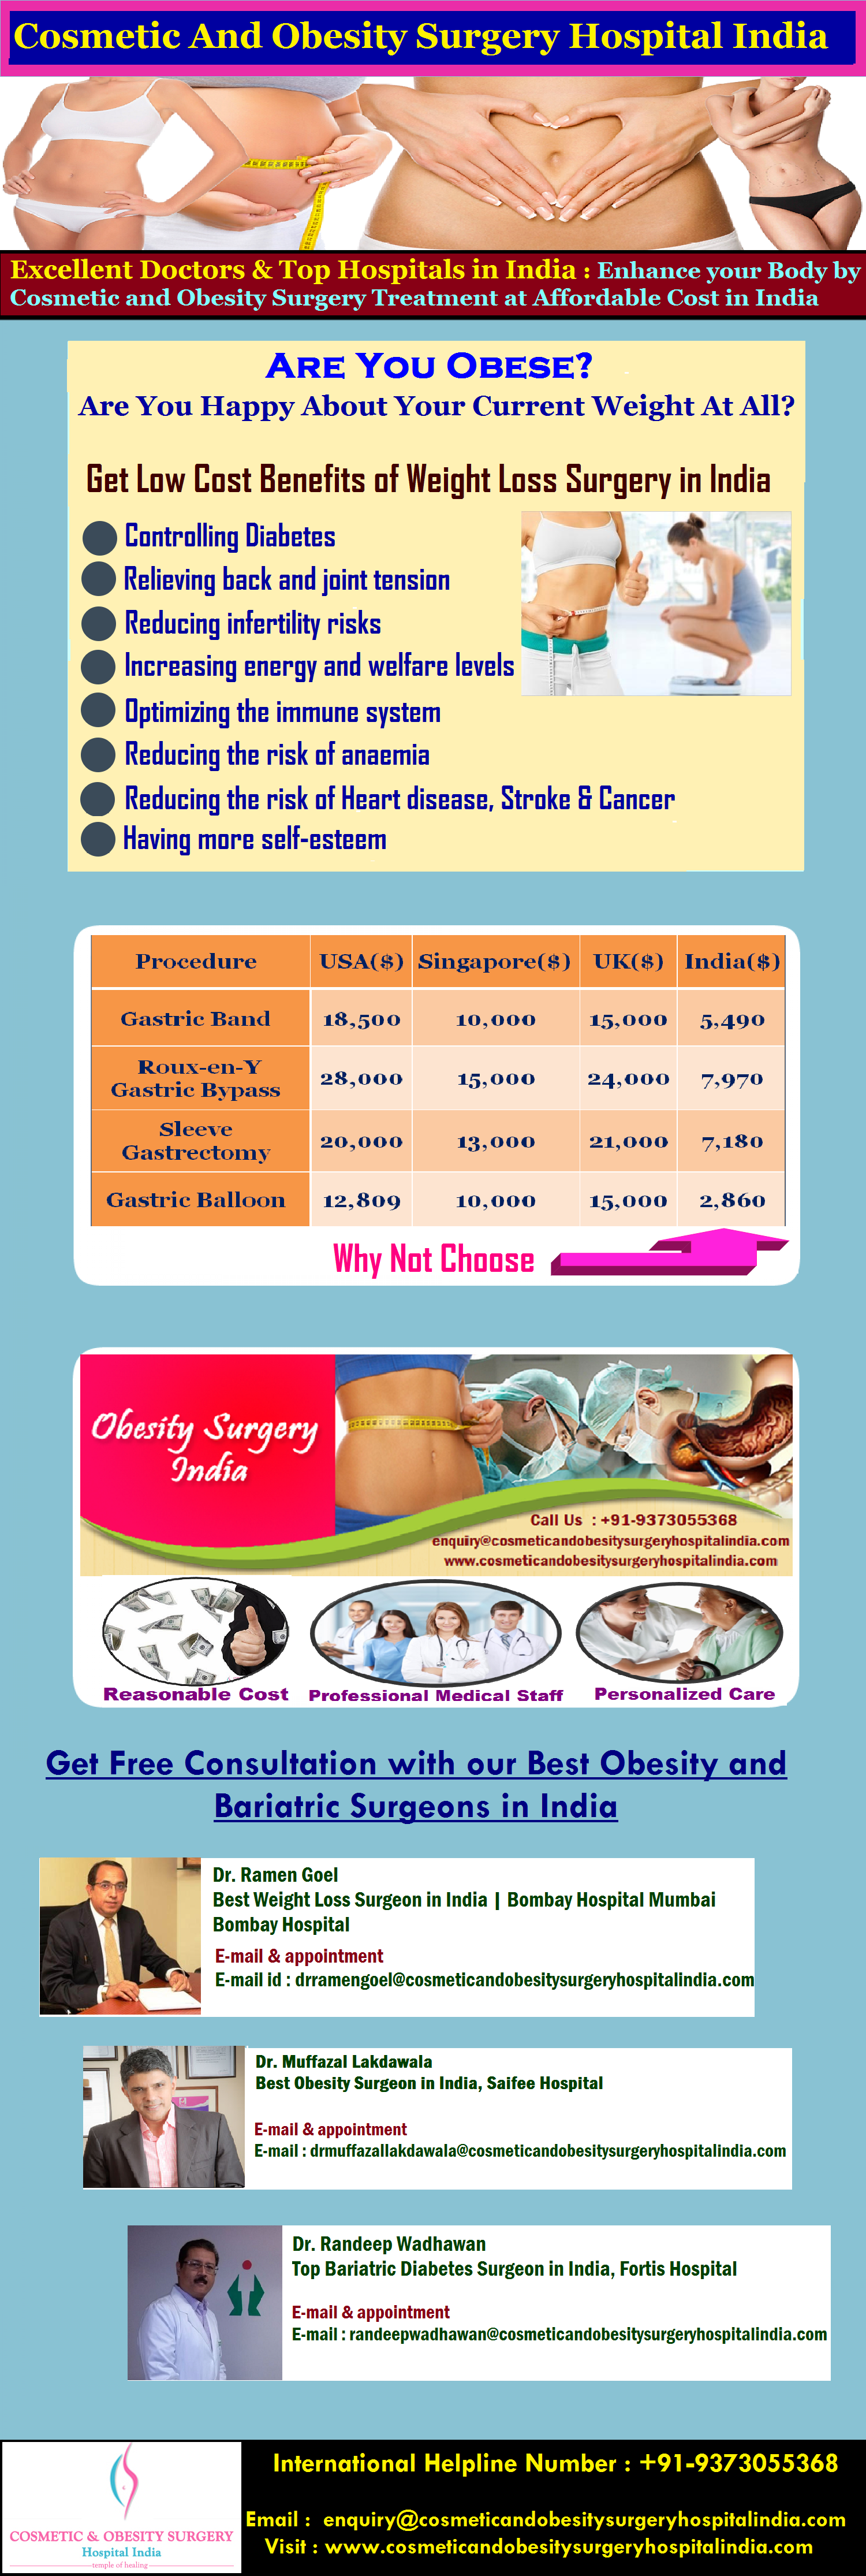 Low Cost benefits of Weight Loss Surgery in India with Cosmetic and Obesity Surgery Hospital India Infographic